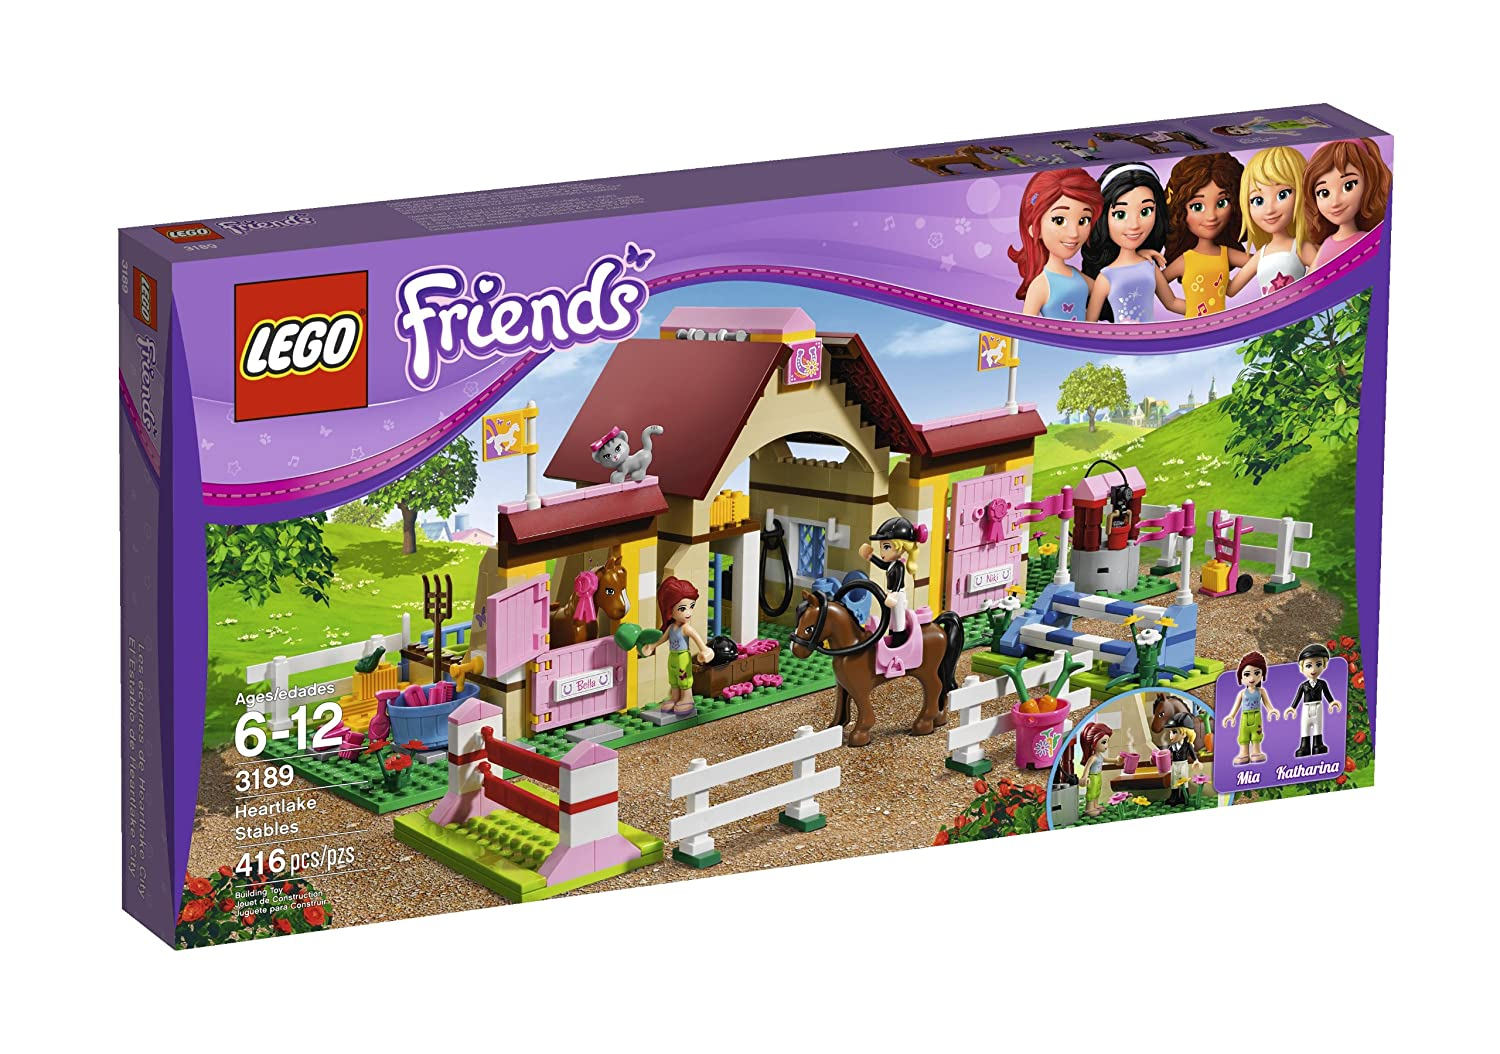 3189 Heartlake Stables Lego friends horse farm